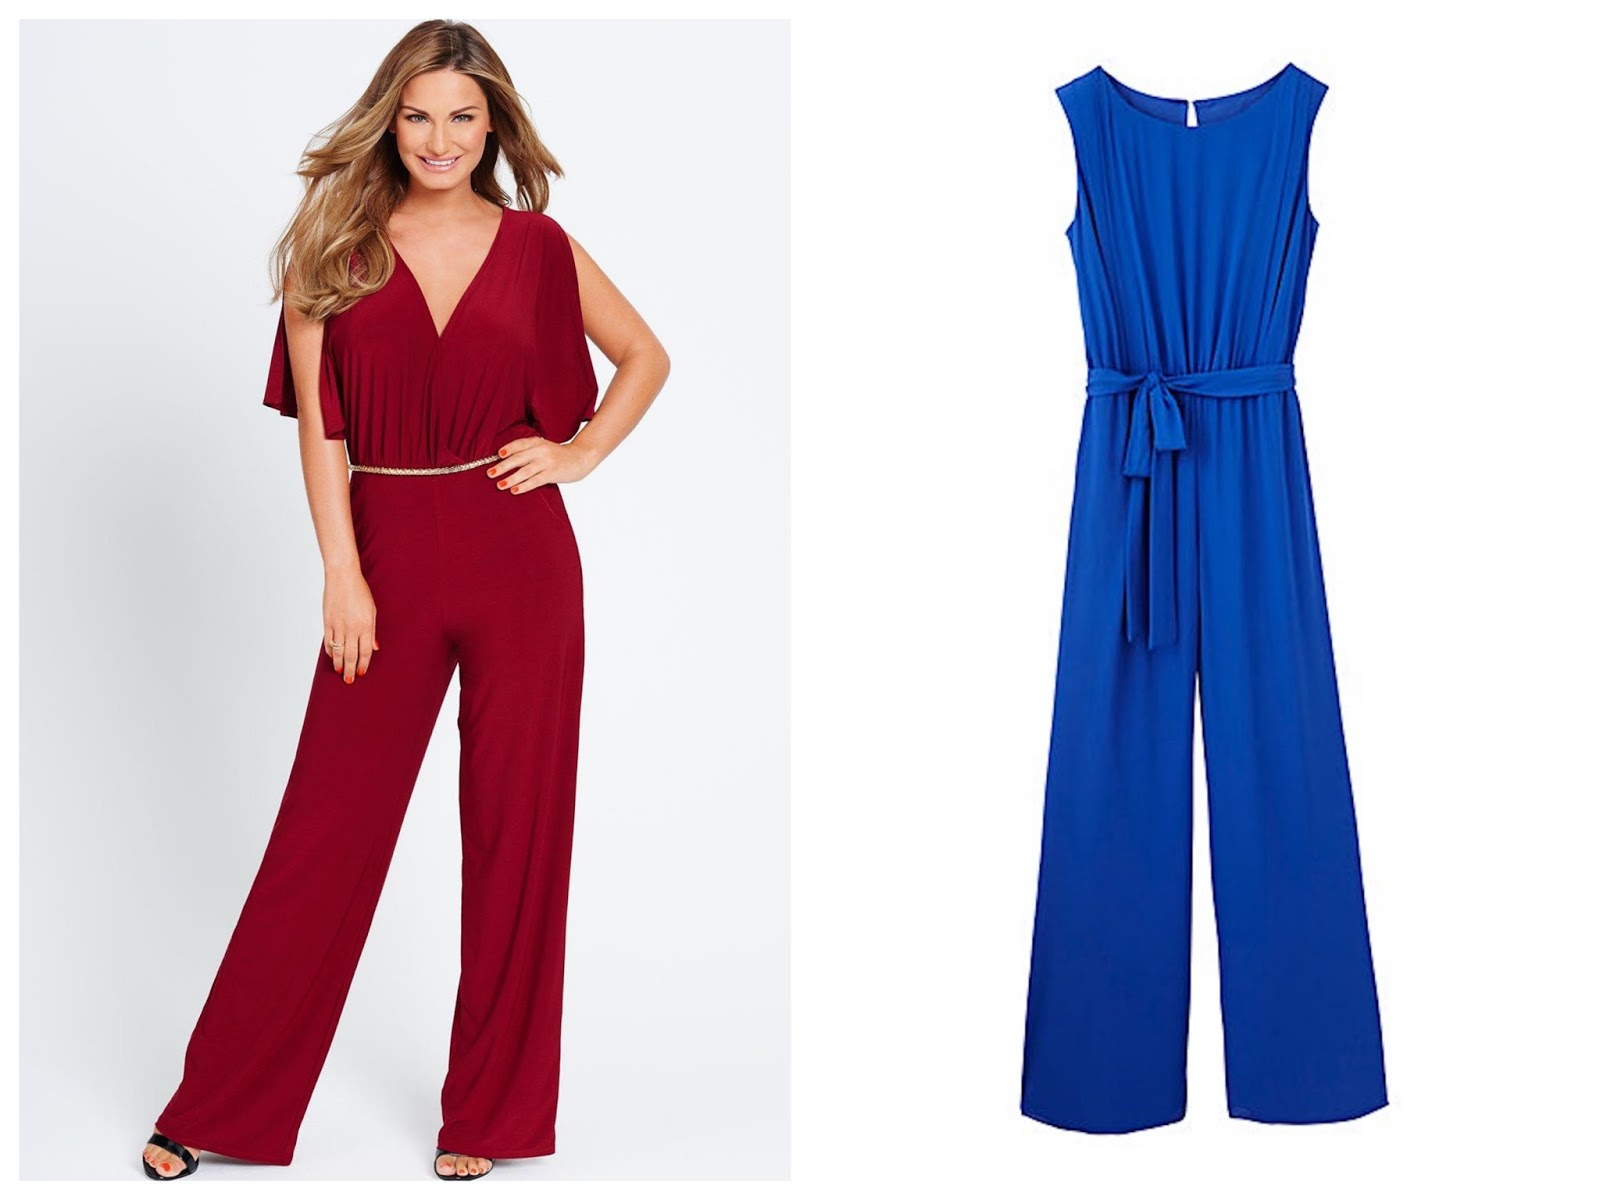 68dc59fdc782 Christmas party looks  The jumpsuit